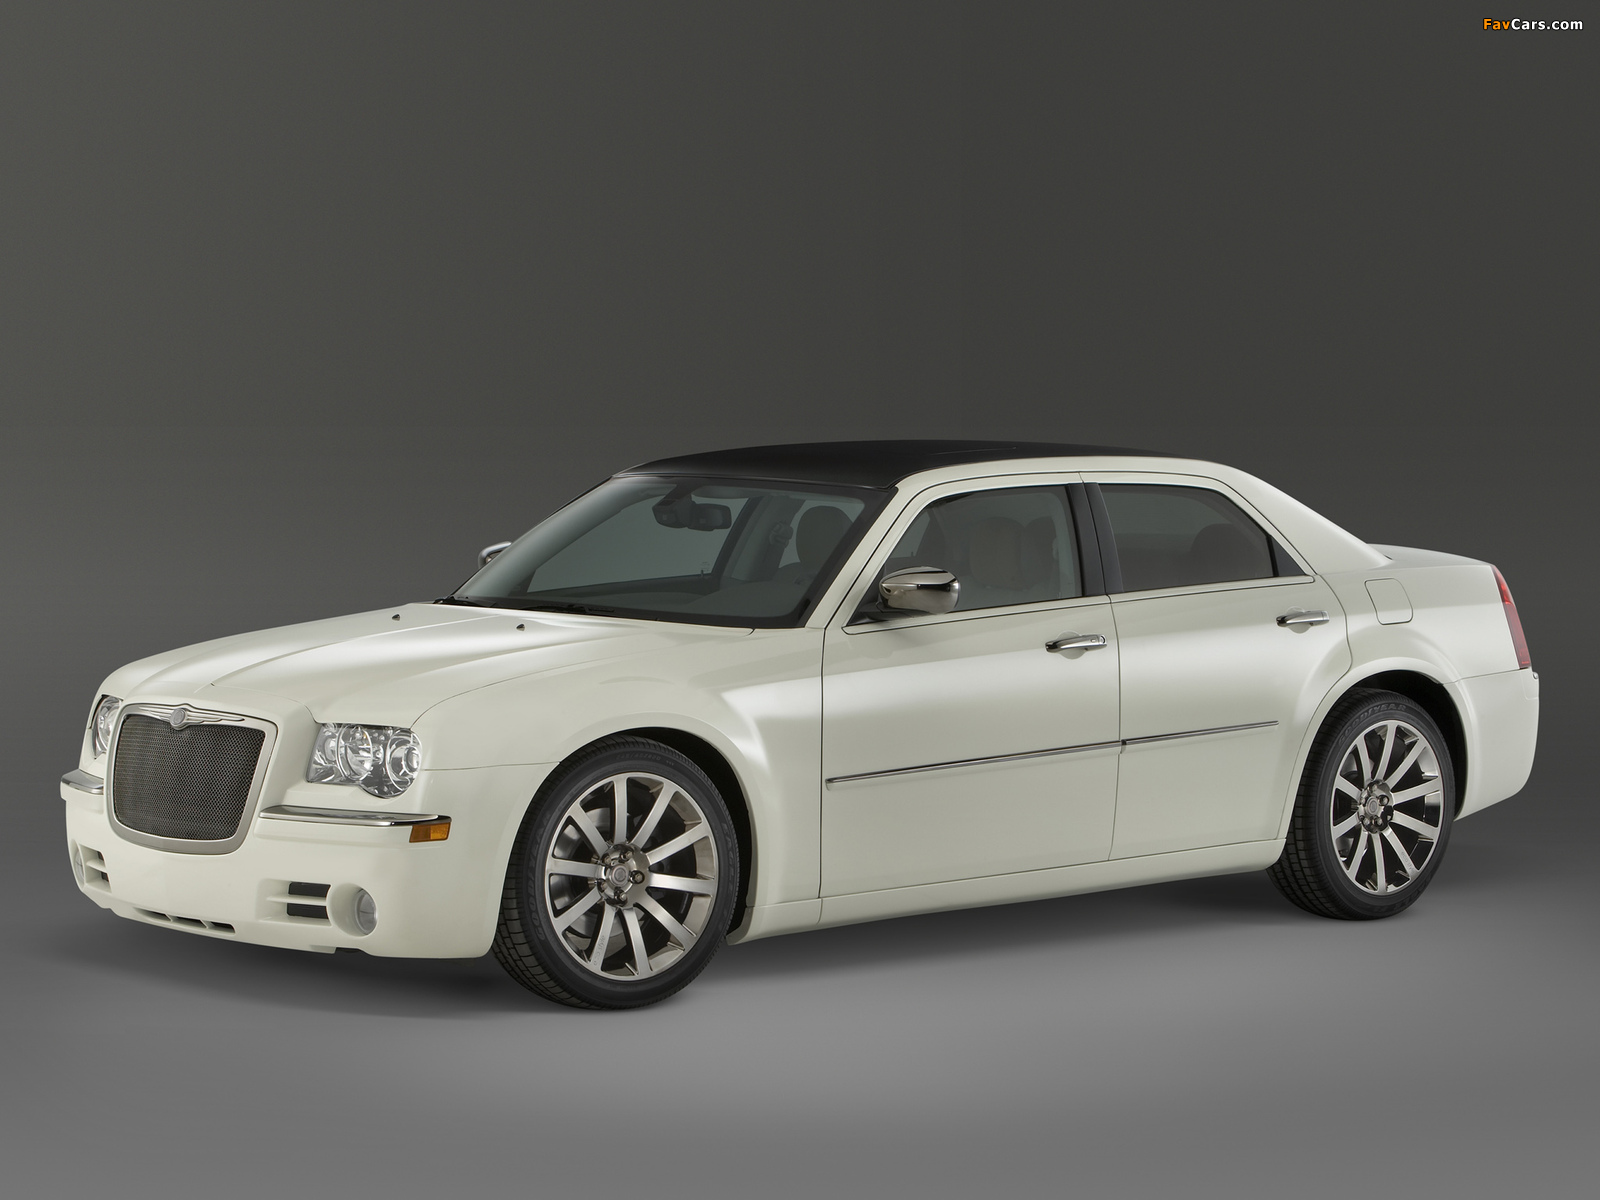 Chrysler 300 EcoStyle Concept (LX) 2010 wallpapers (1600 x 1200)